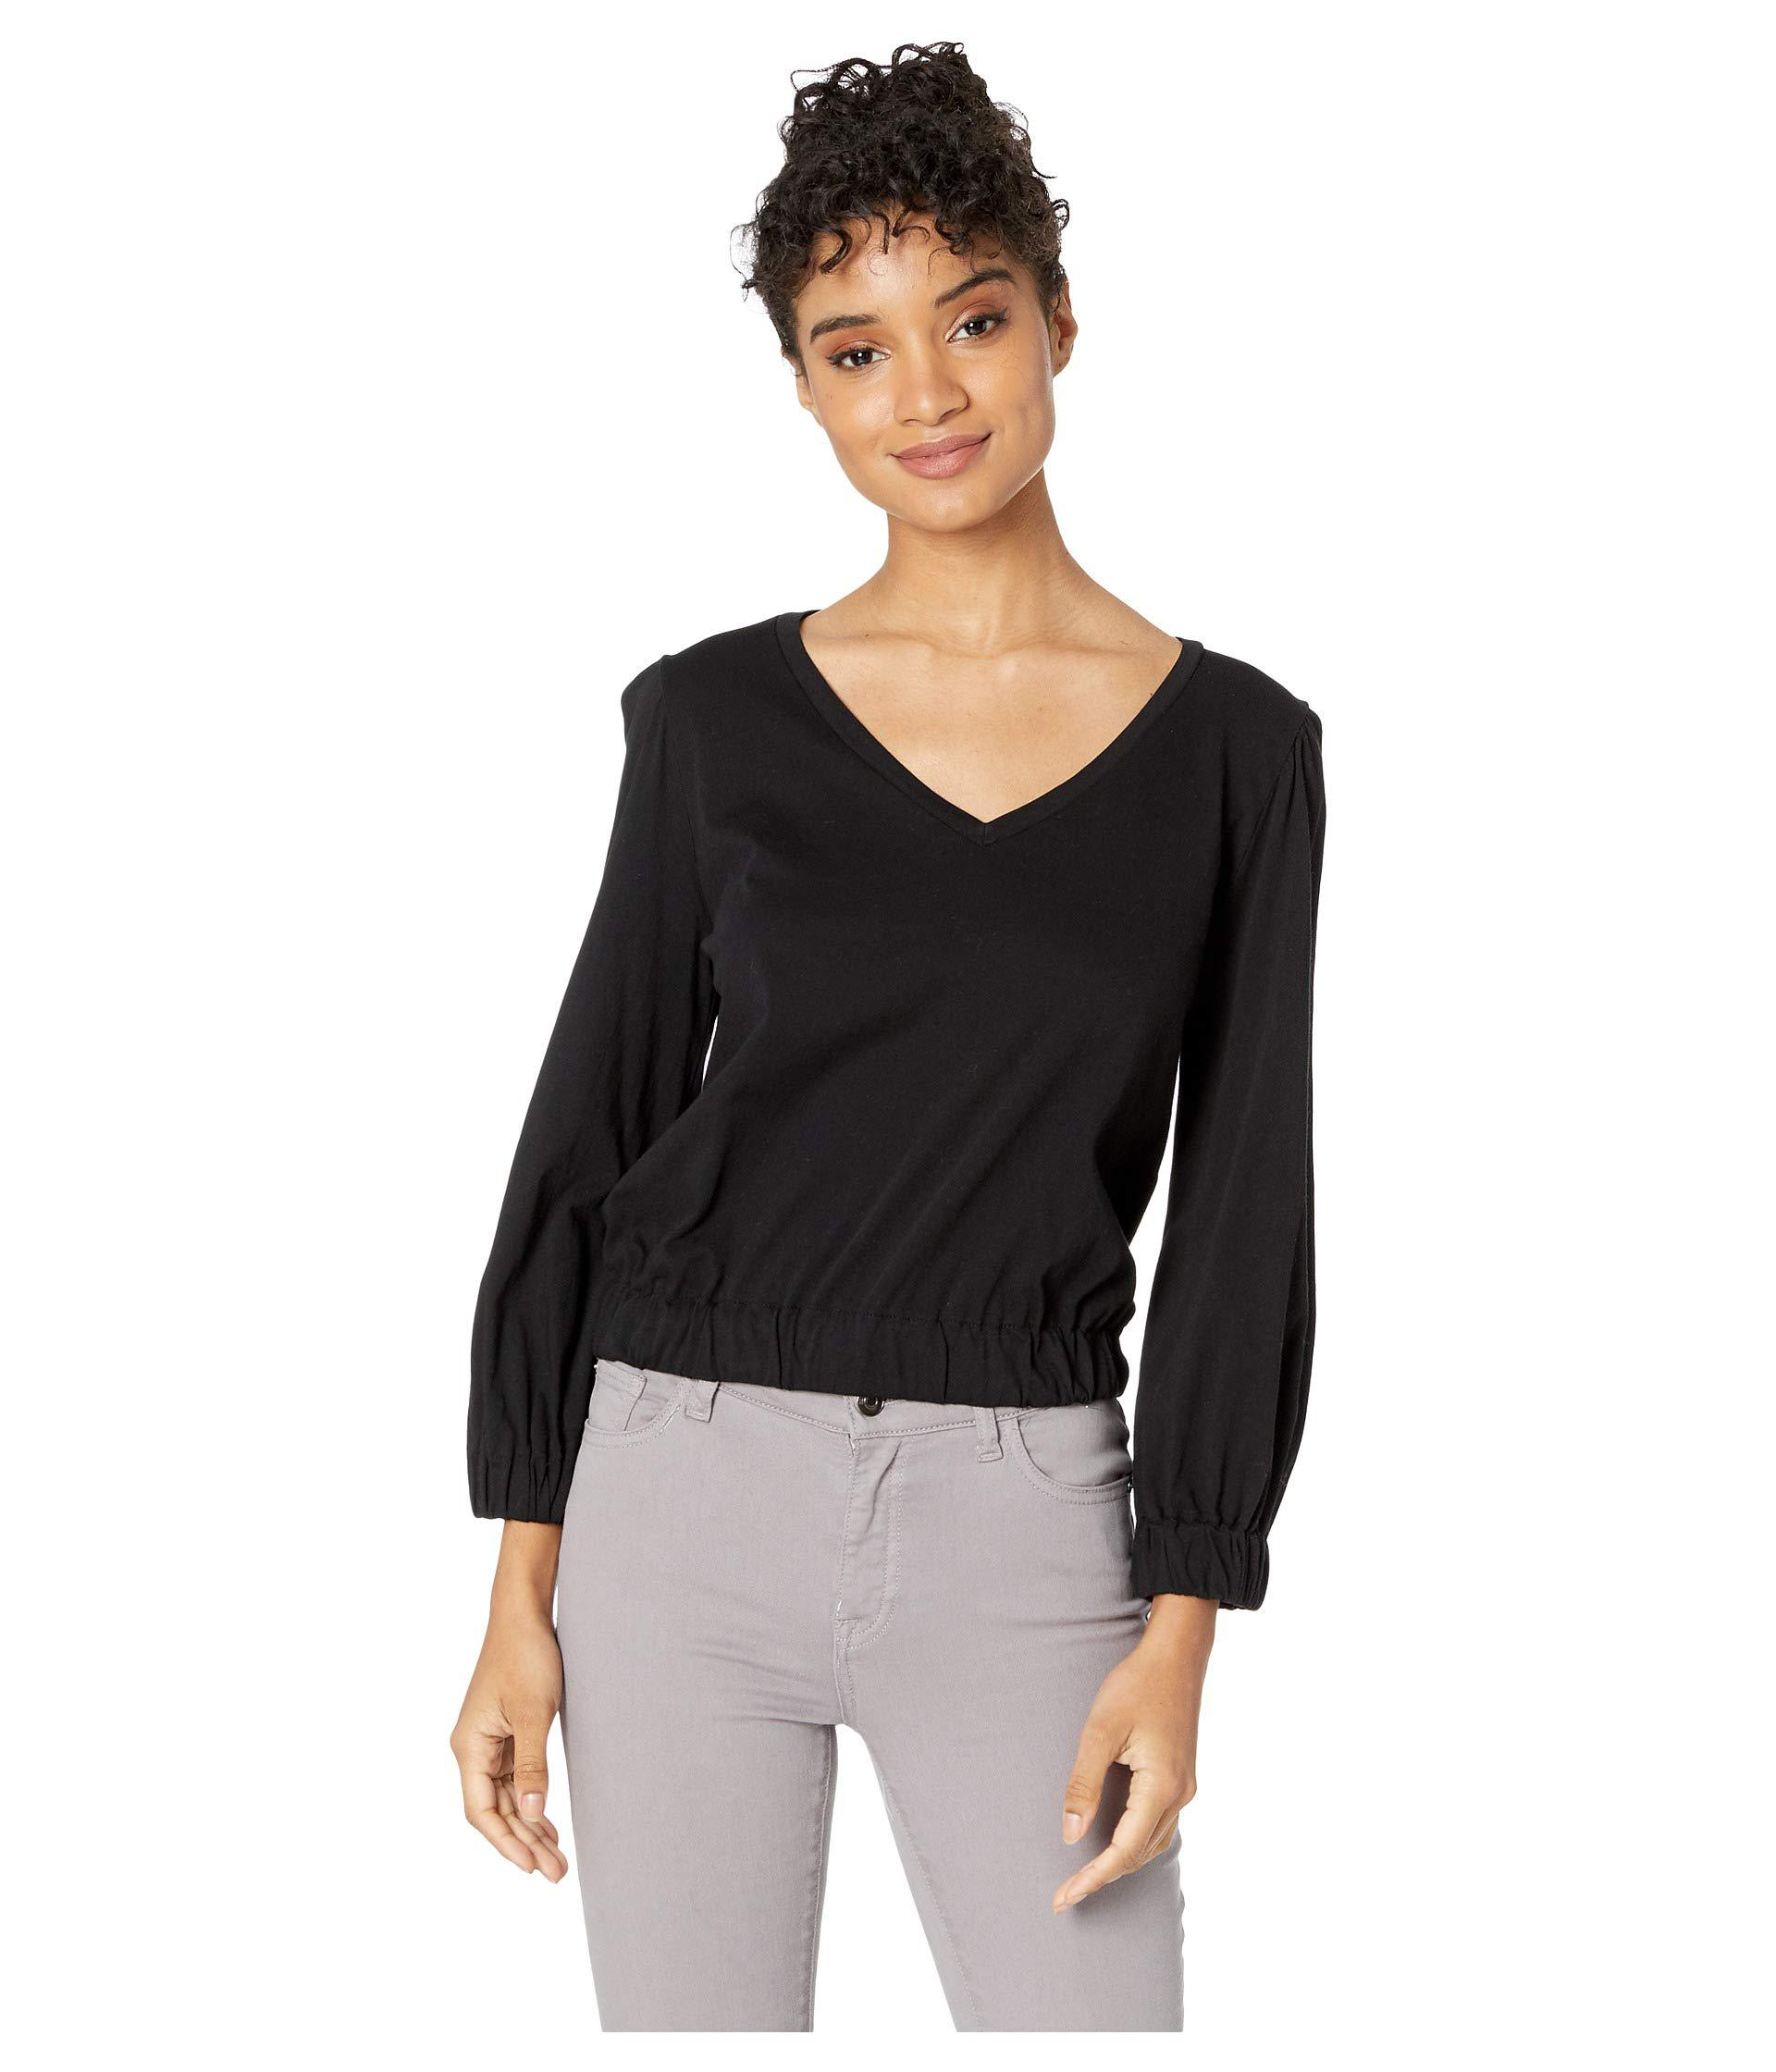 a4ad3804 Lyst - Lamade Kat Top (black) Women's Clothing in Black